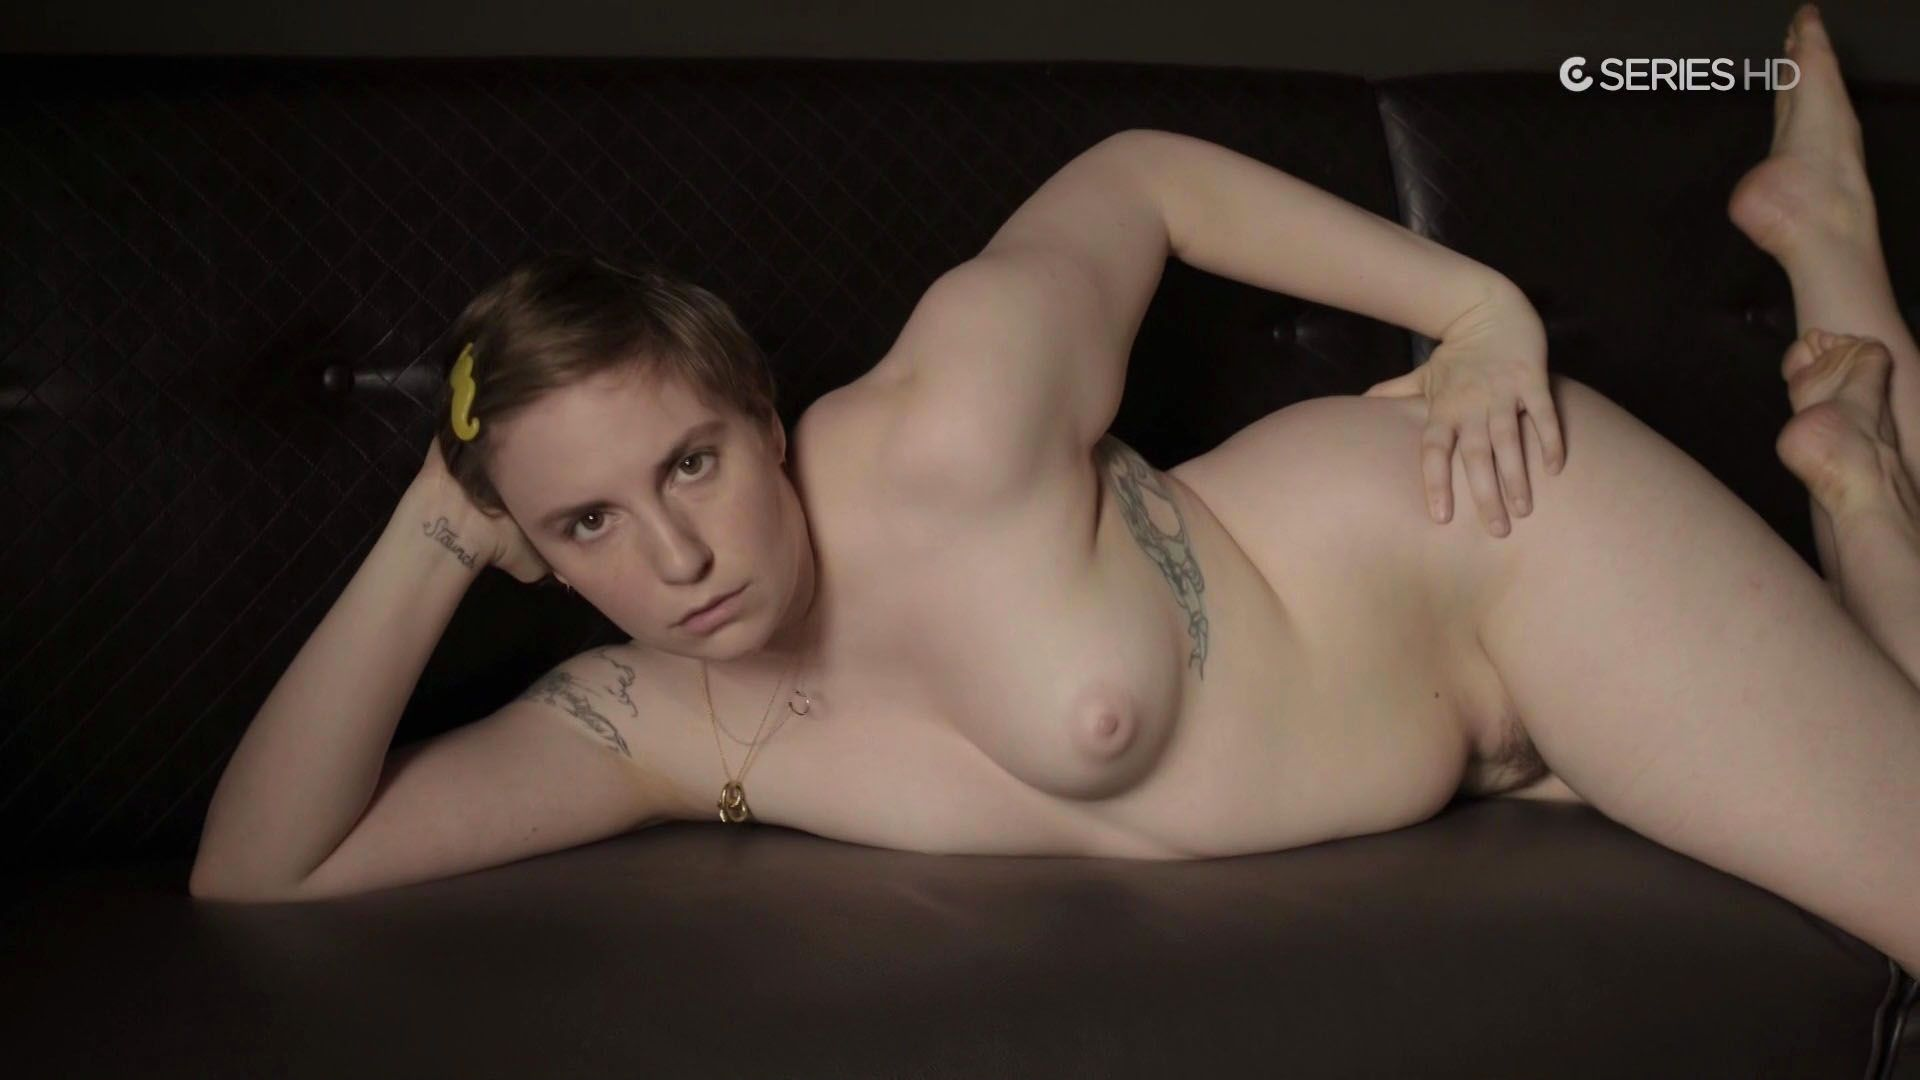 Lena Dunham pussy showing